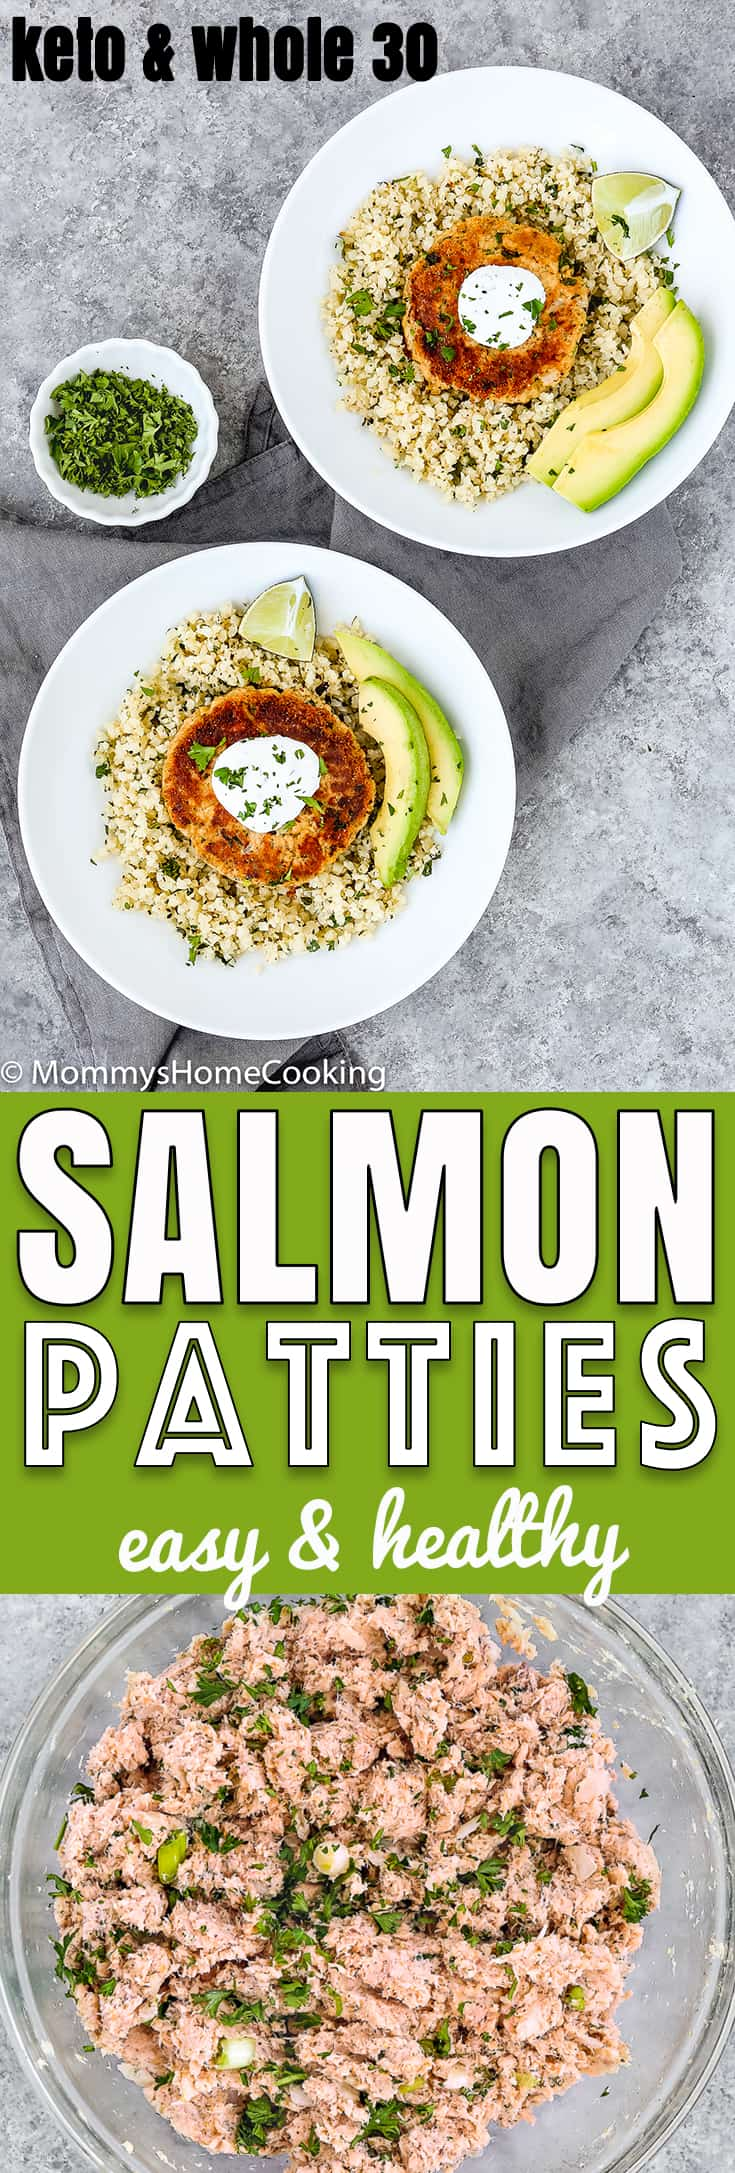 These Easy Eggless Salmon Patties are juicy, moist, flavorful, and super easy to make!! They come together in about 30 minutes. #Recipe #Healthy #Salmon #Whole30 #Keto friendly. http://mommyshomecooking.com